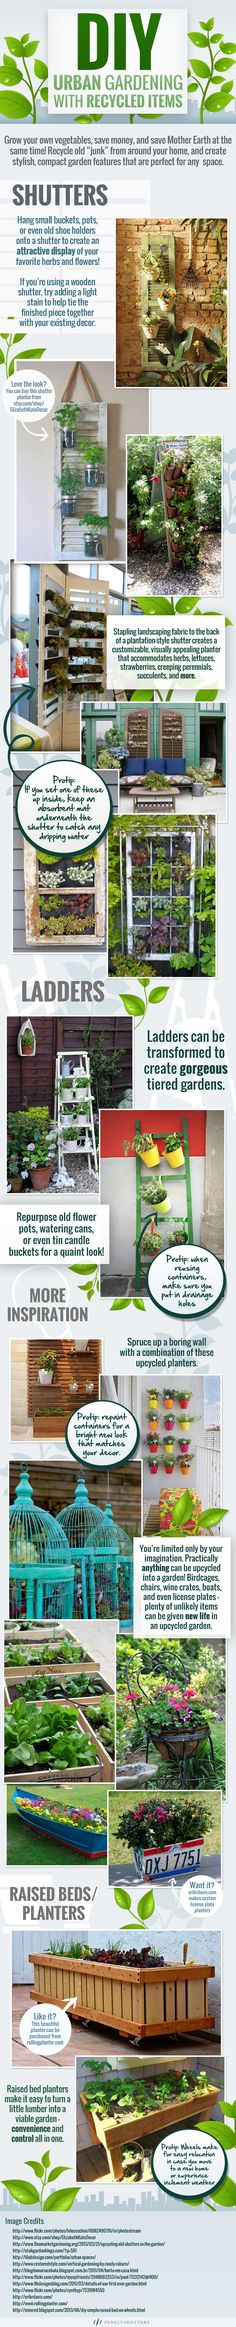 "Grow your own vegetables, save money and save Mother Earth at the same time! Recycle old ""junk"" from around your house and create stylish, compact garden features that are perfect for any space."